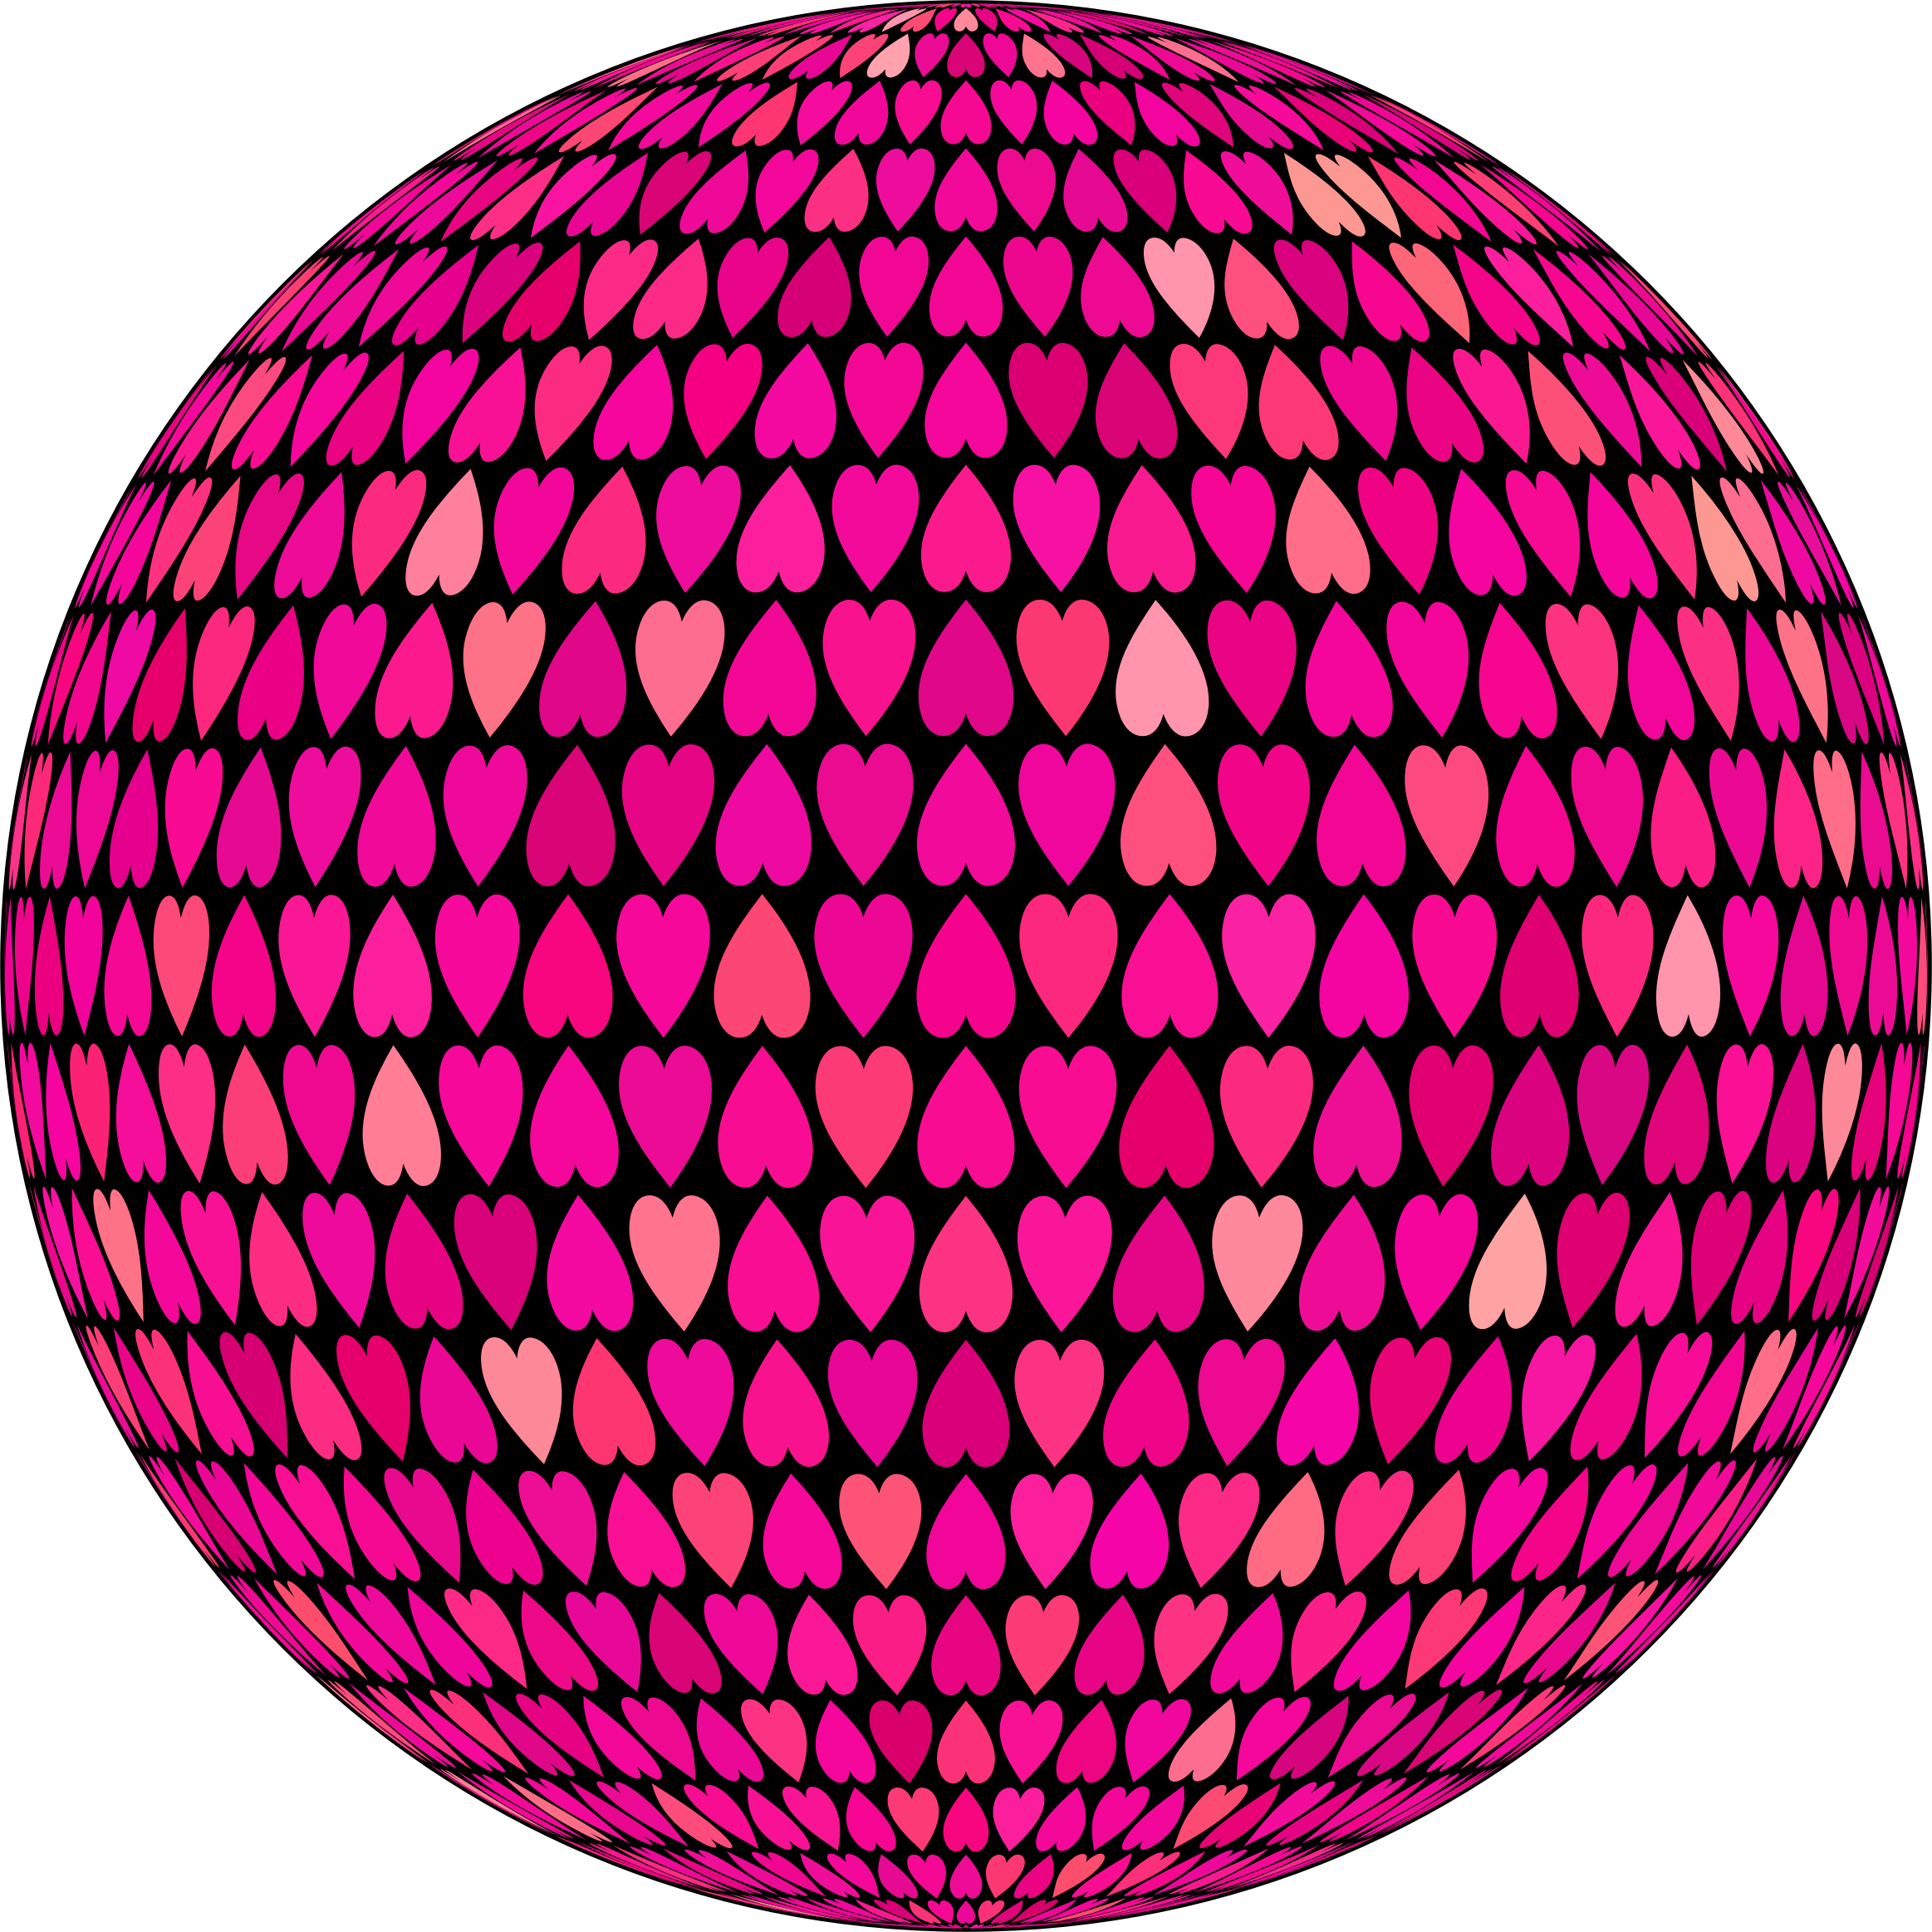 Prismatic Alternating Hearts Sphere 6 by GDJ